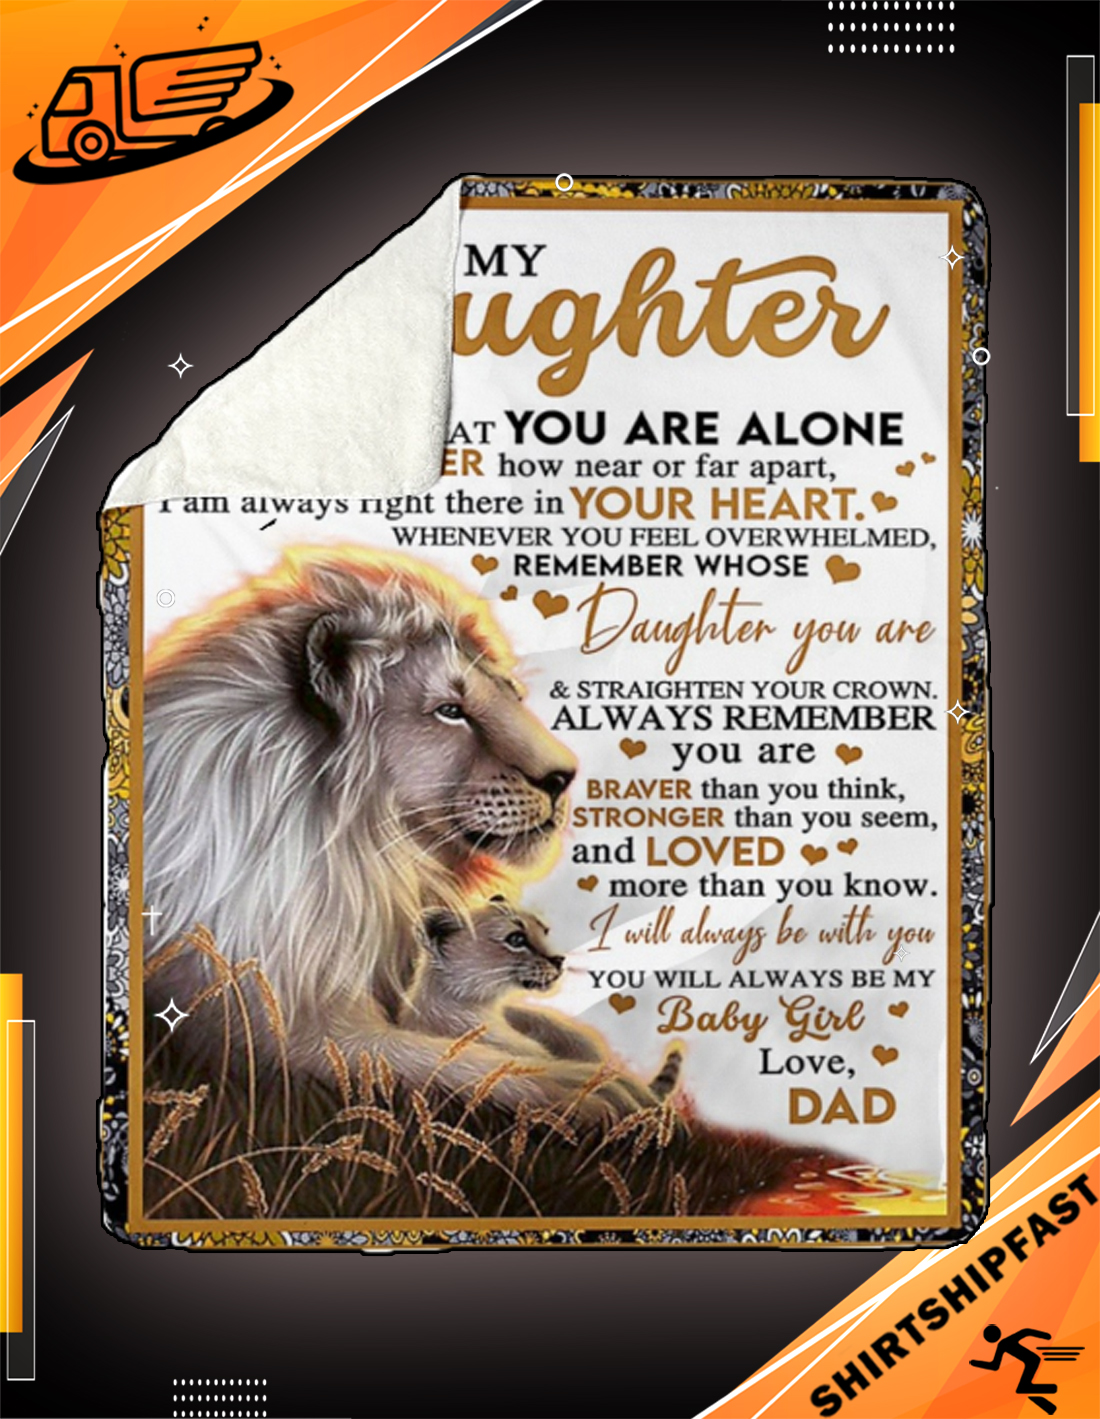 Lion Dad and daughter to my daughter never feel that you are alone blanket - Picture 3